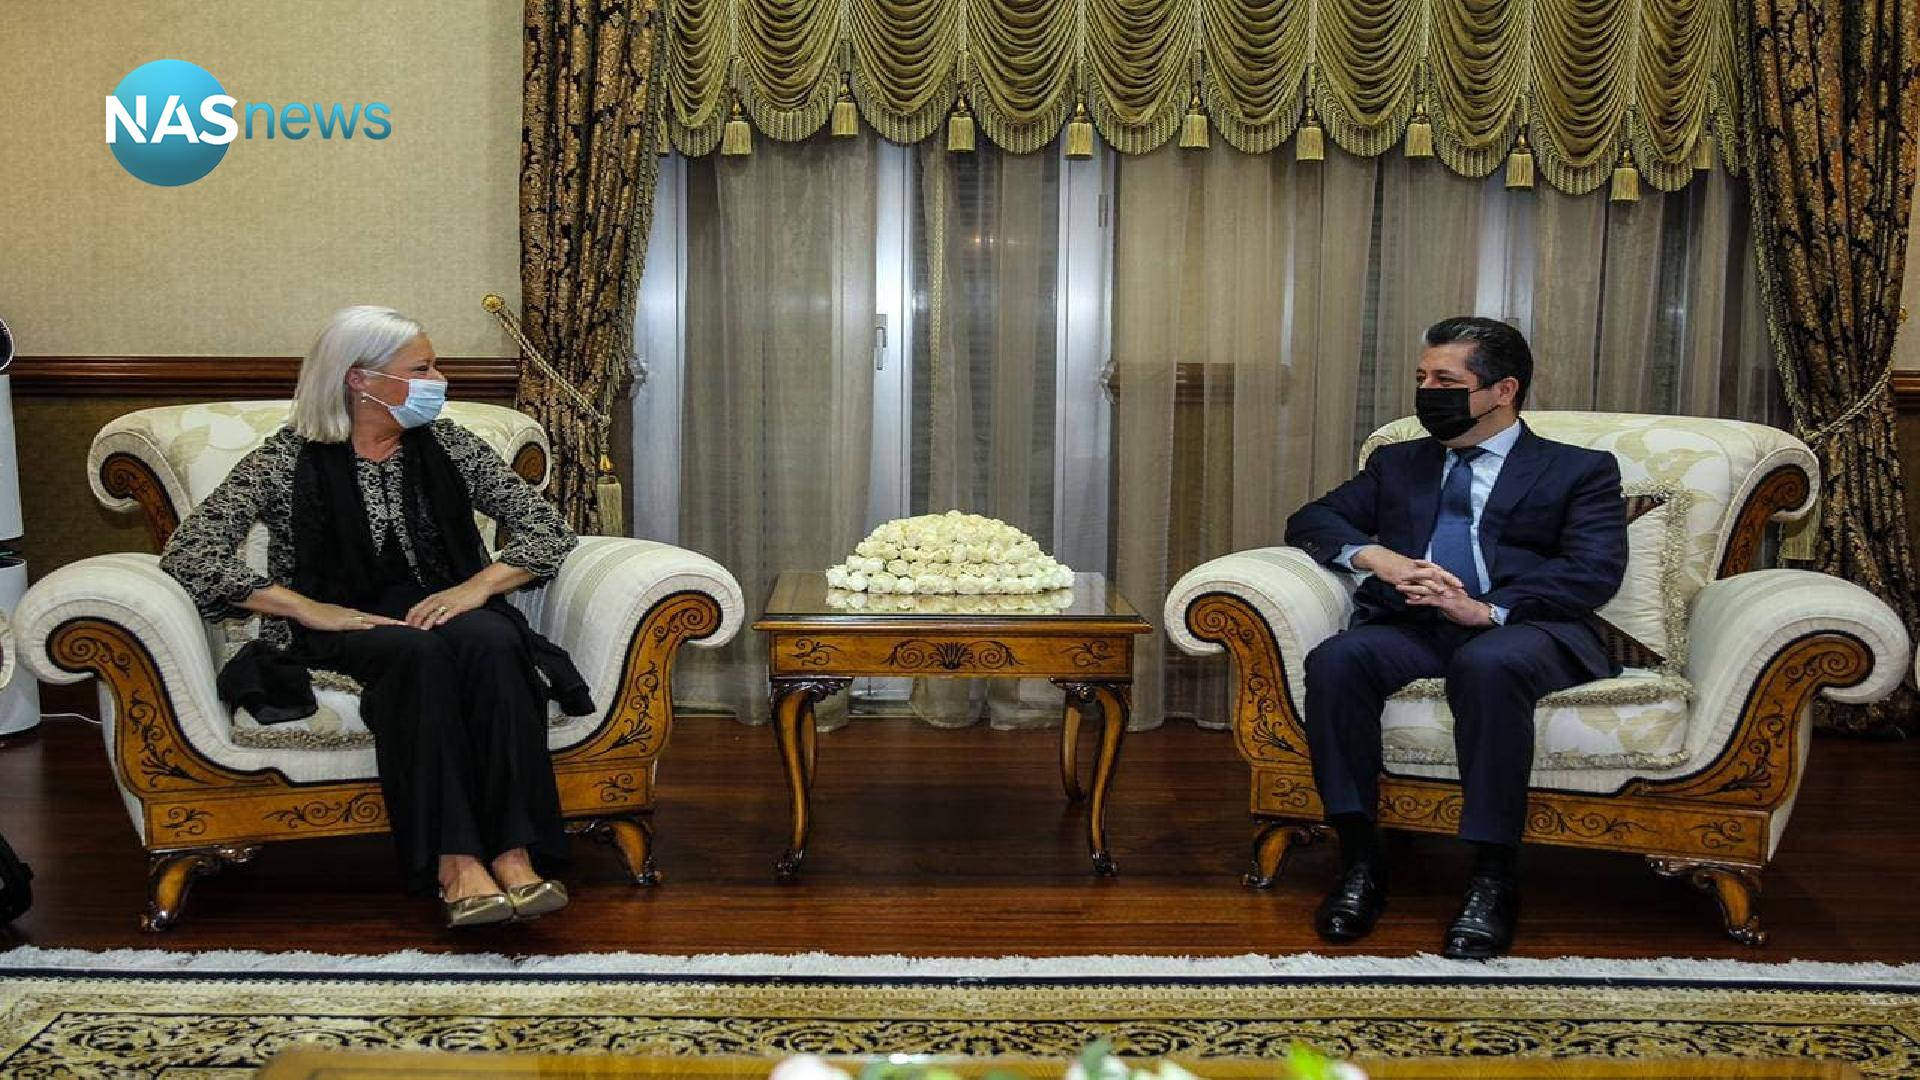 The outstanding issues between Erbil and Baghdad on the table for a meeting between Barzani and Blashardt